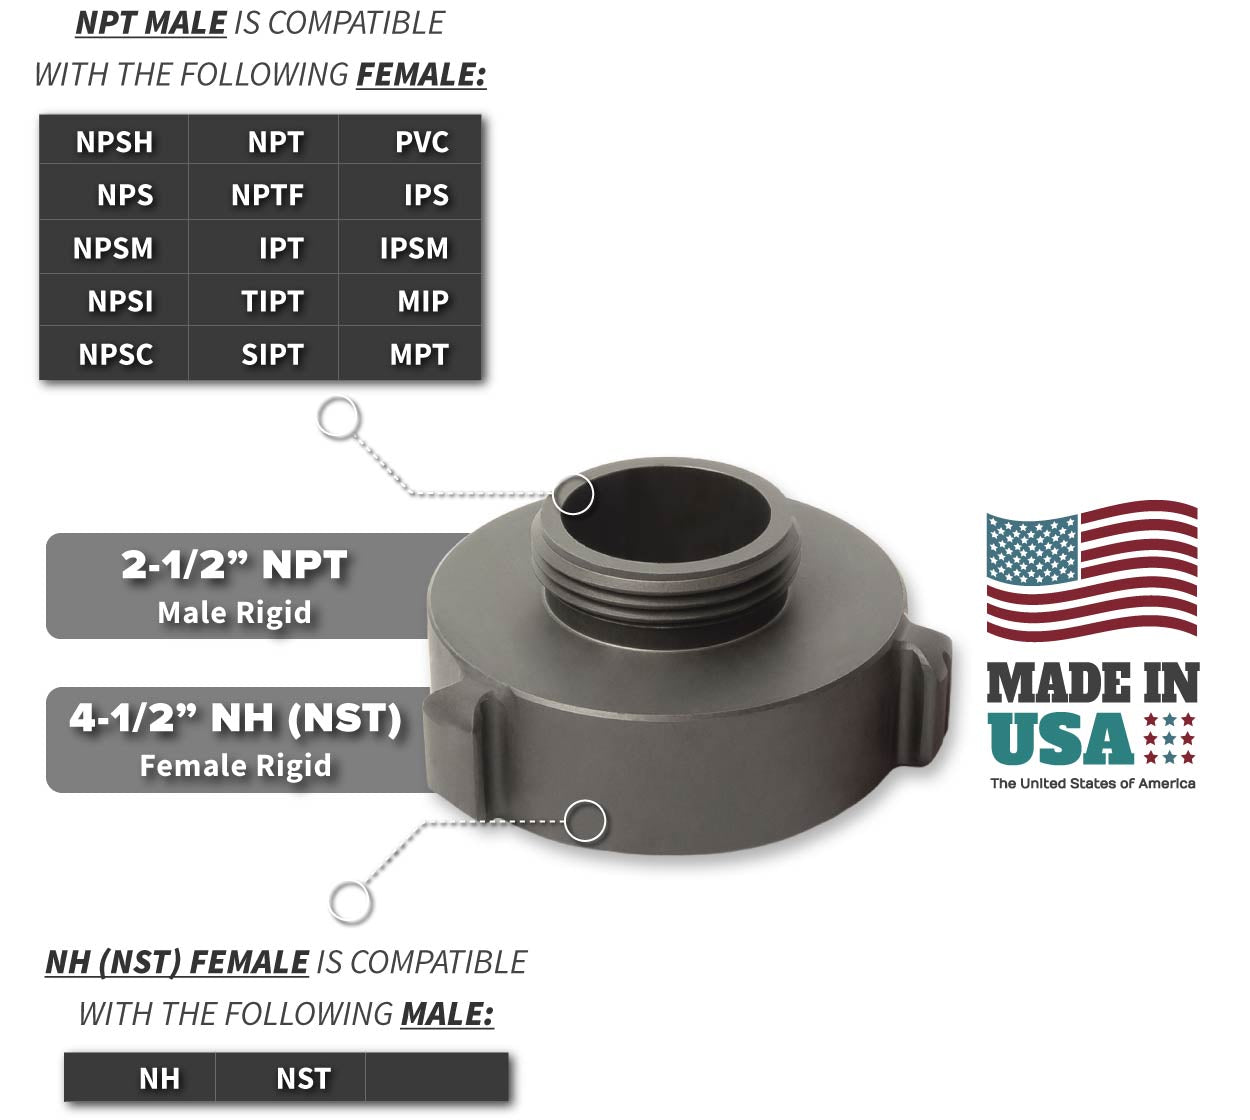 4.5 Inch NH-NST Female x 2.5 Inch NPT Male Compatibility Thread Chart